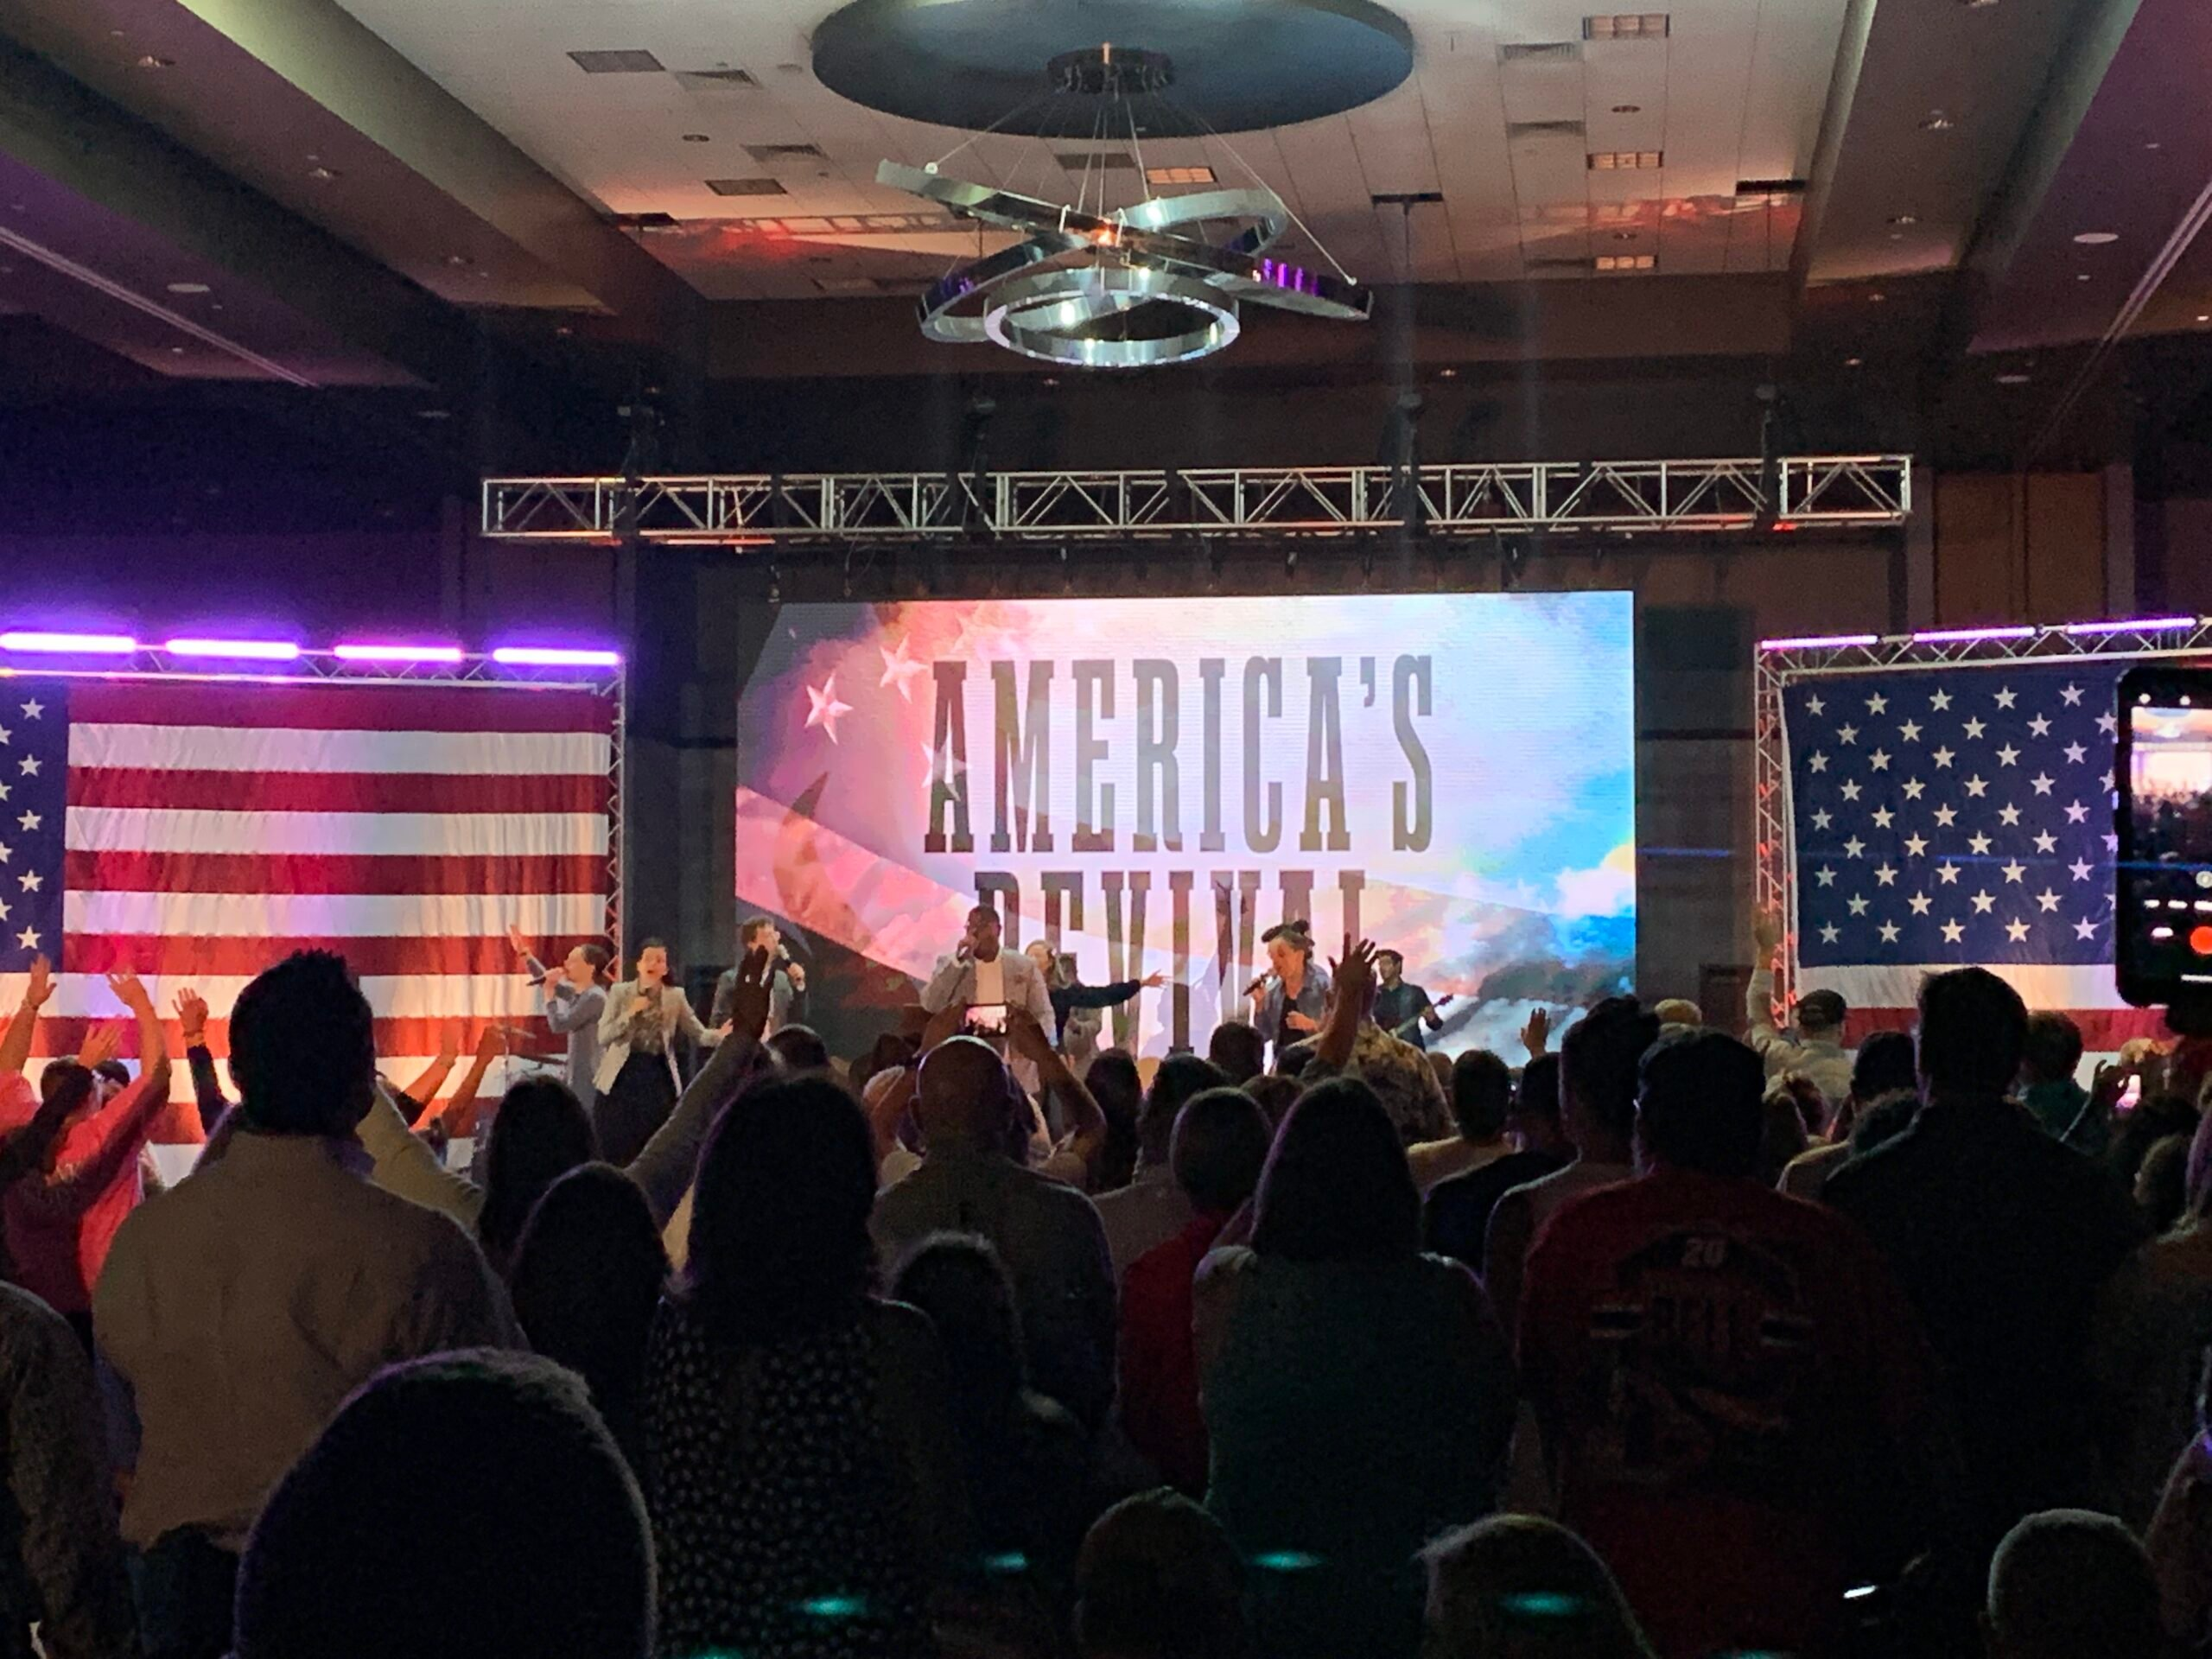 More than 1,000 worshippers gather for America's Revival at the Frisco Convention Center in Frisco, Texas, over the weekend. RNS photo by Bob Smietana